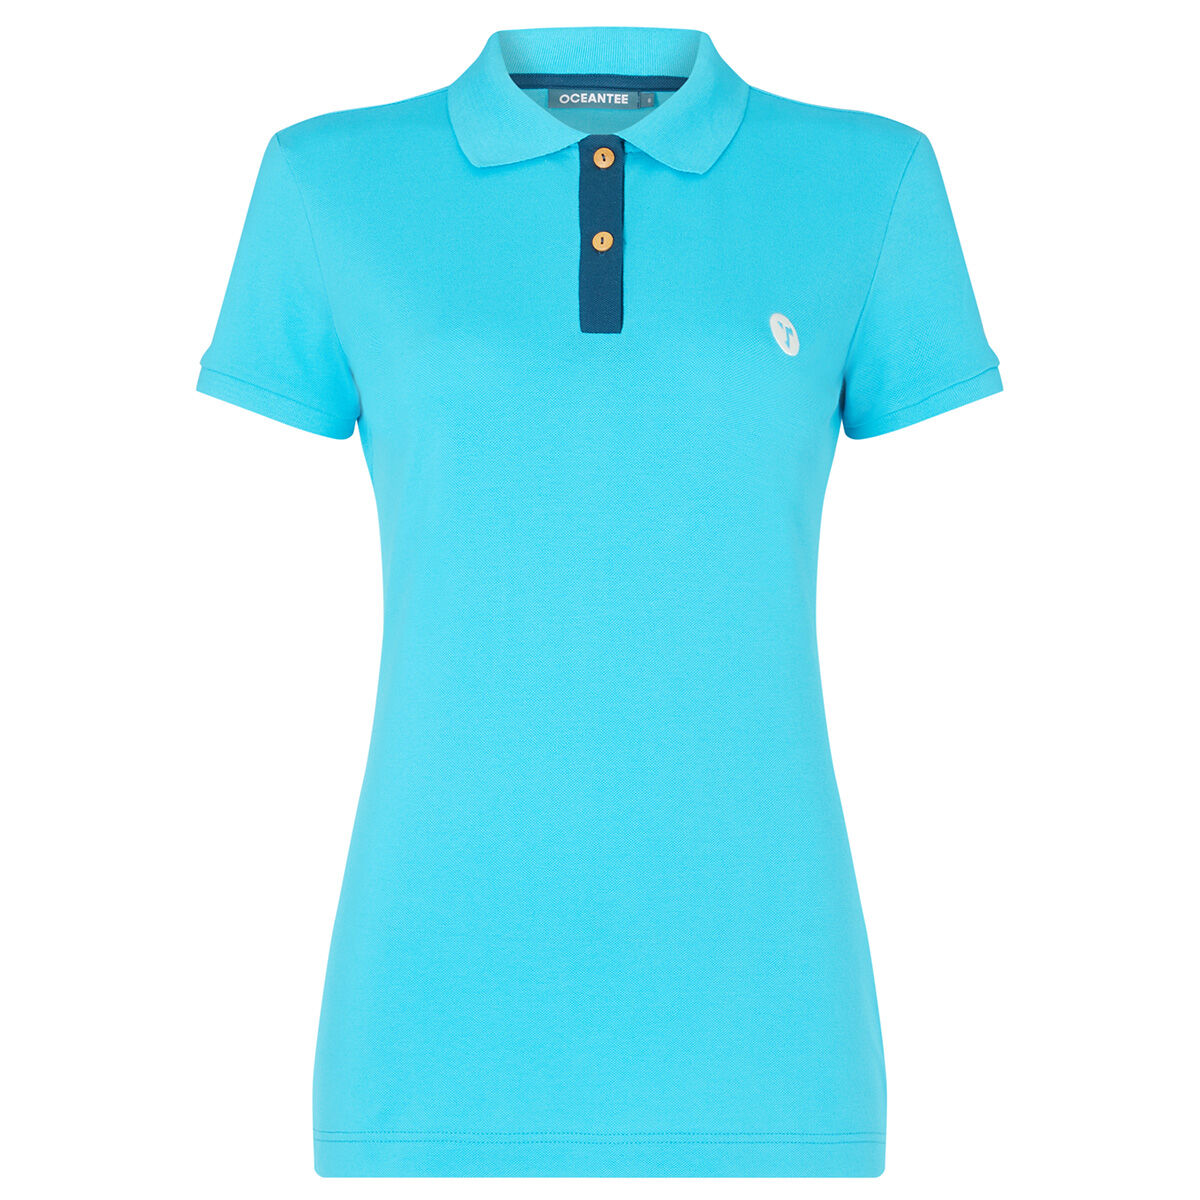 OCEANTEE Mako Ladies Golf Polo Shirt, Female, Aqua, XS